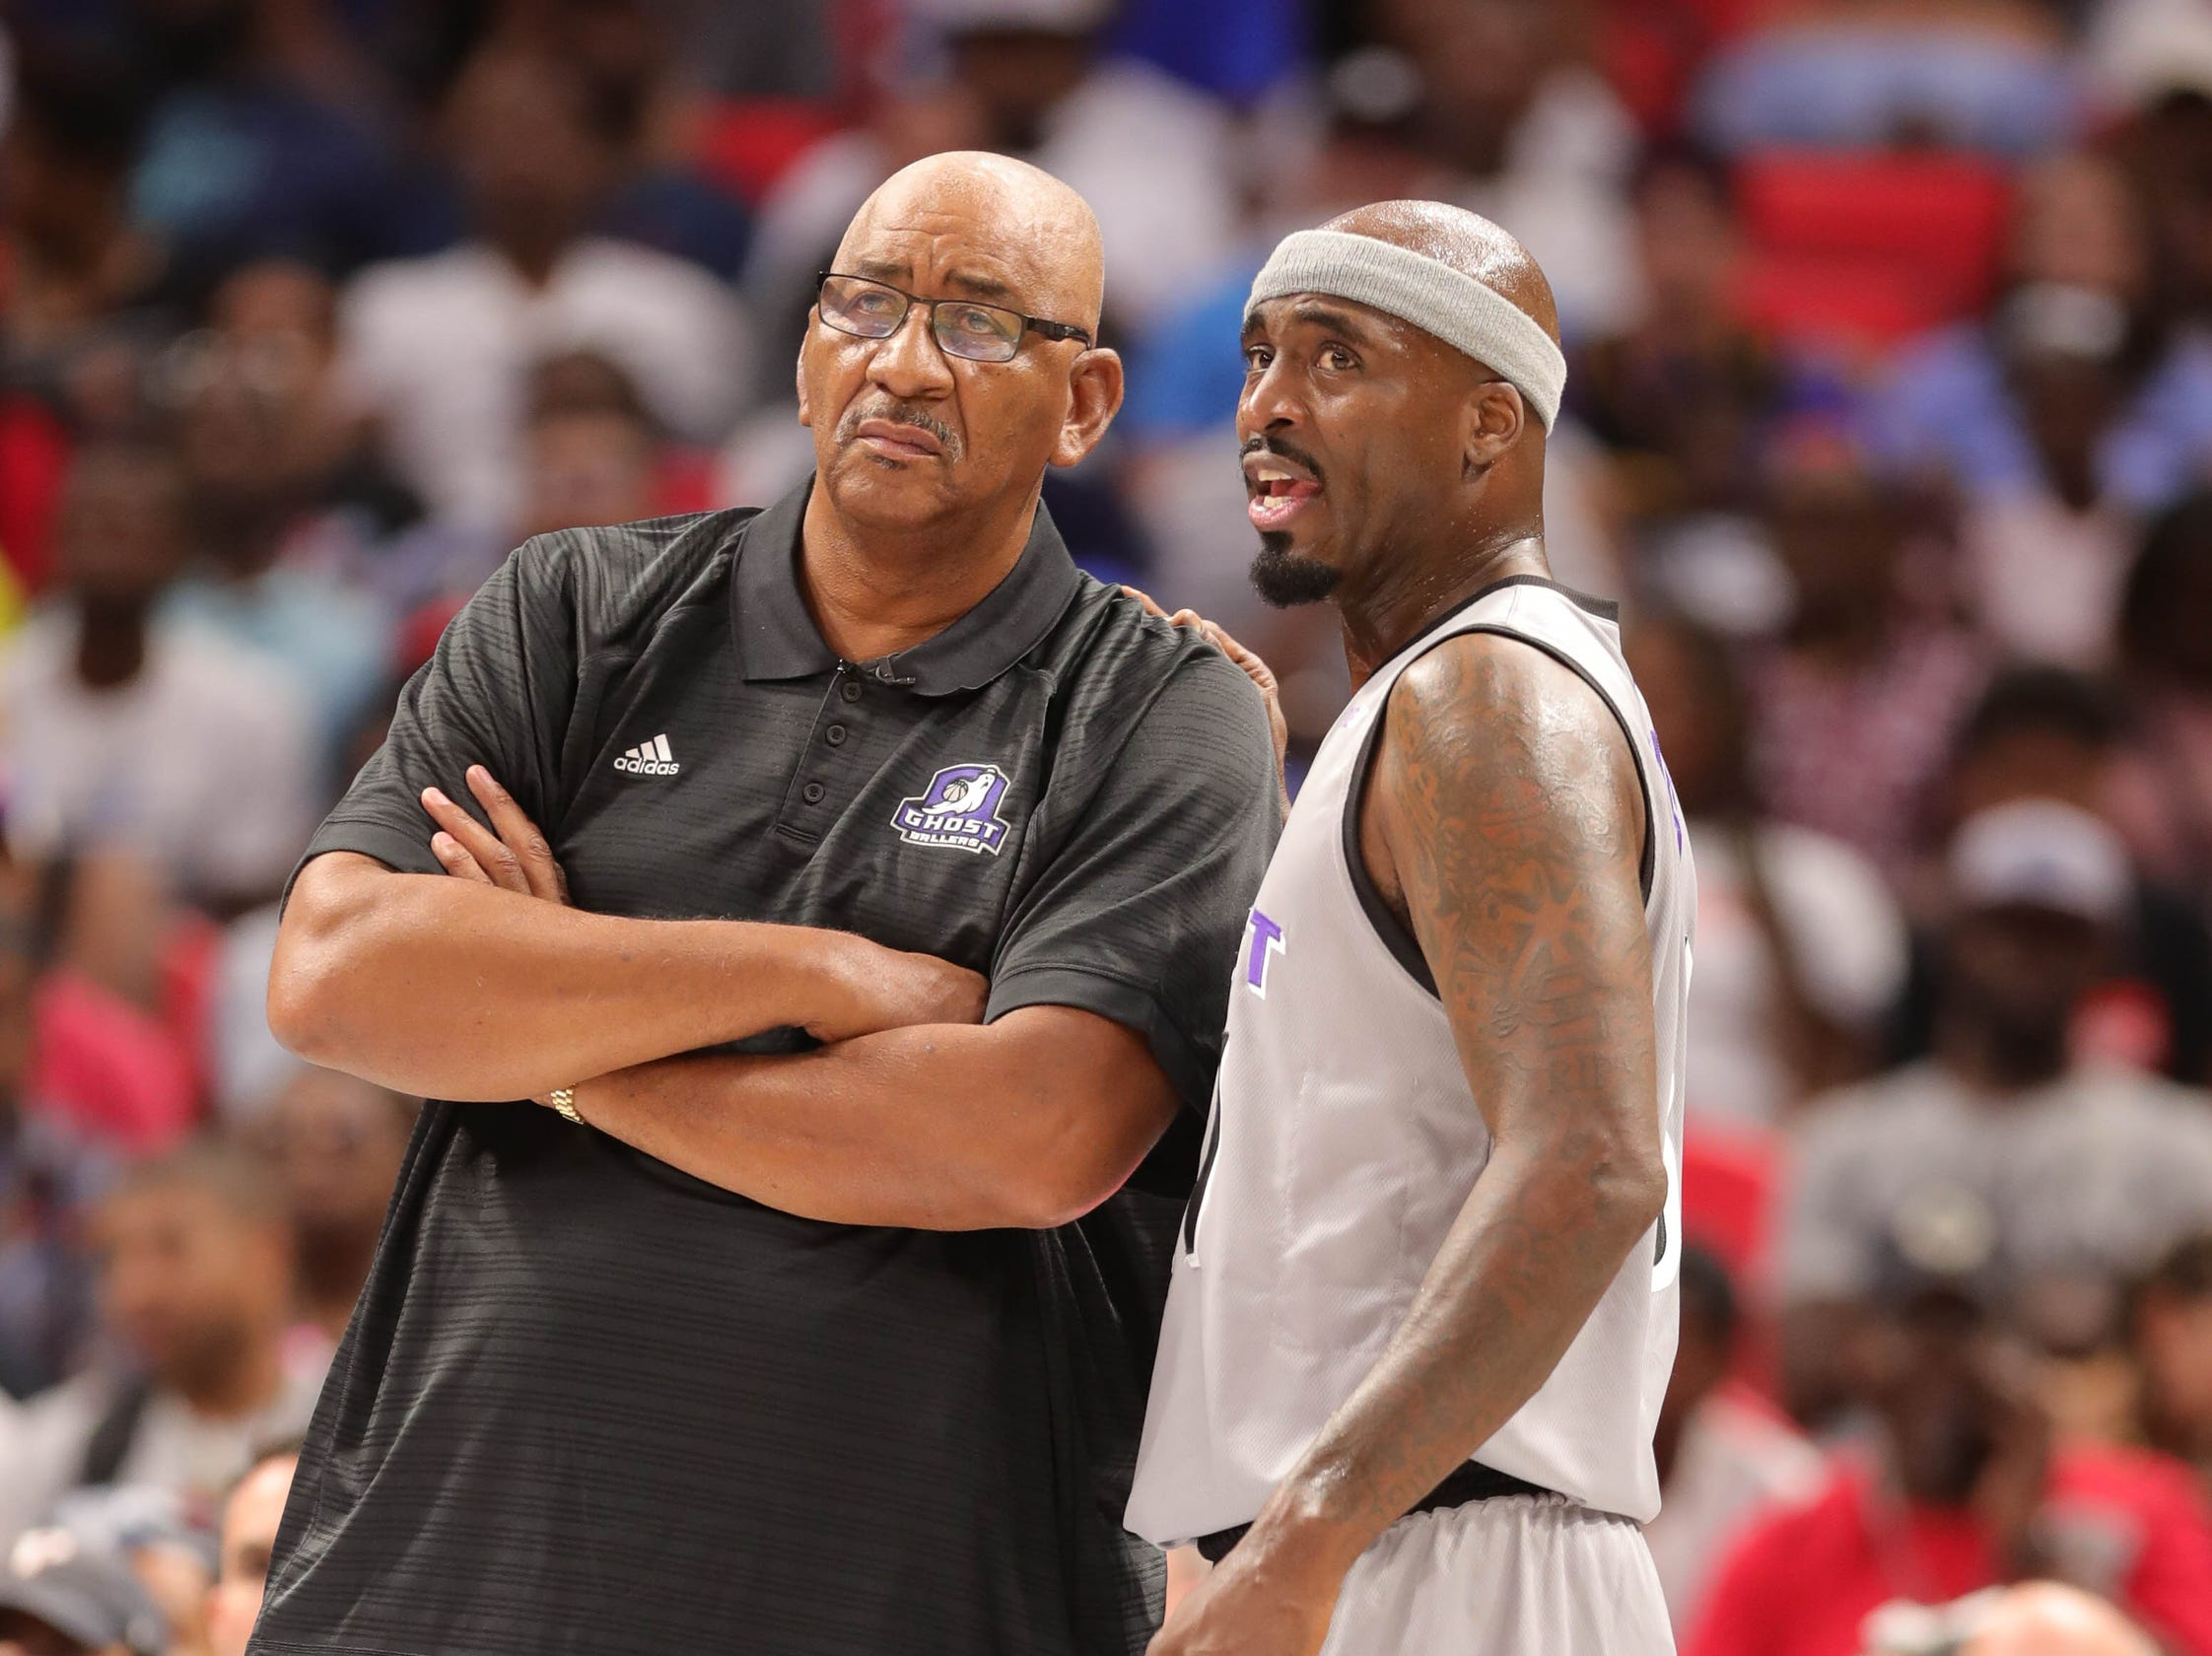 Ghost's  head coach George Gervin and Ricky Davis on the bench during BIG3 action on Friday, July 13, 2018 at Little Caesars Arena in Detroit.